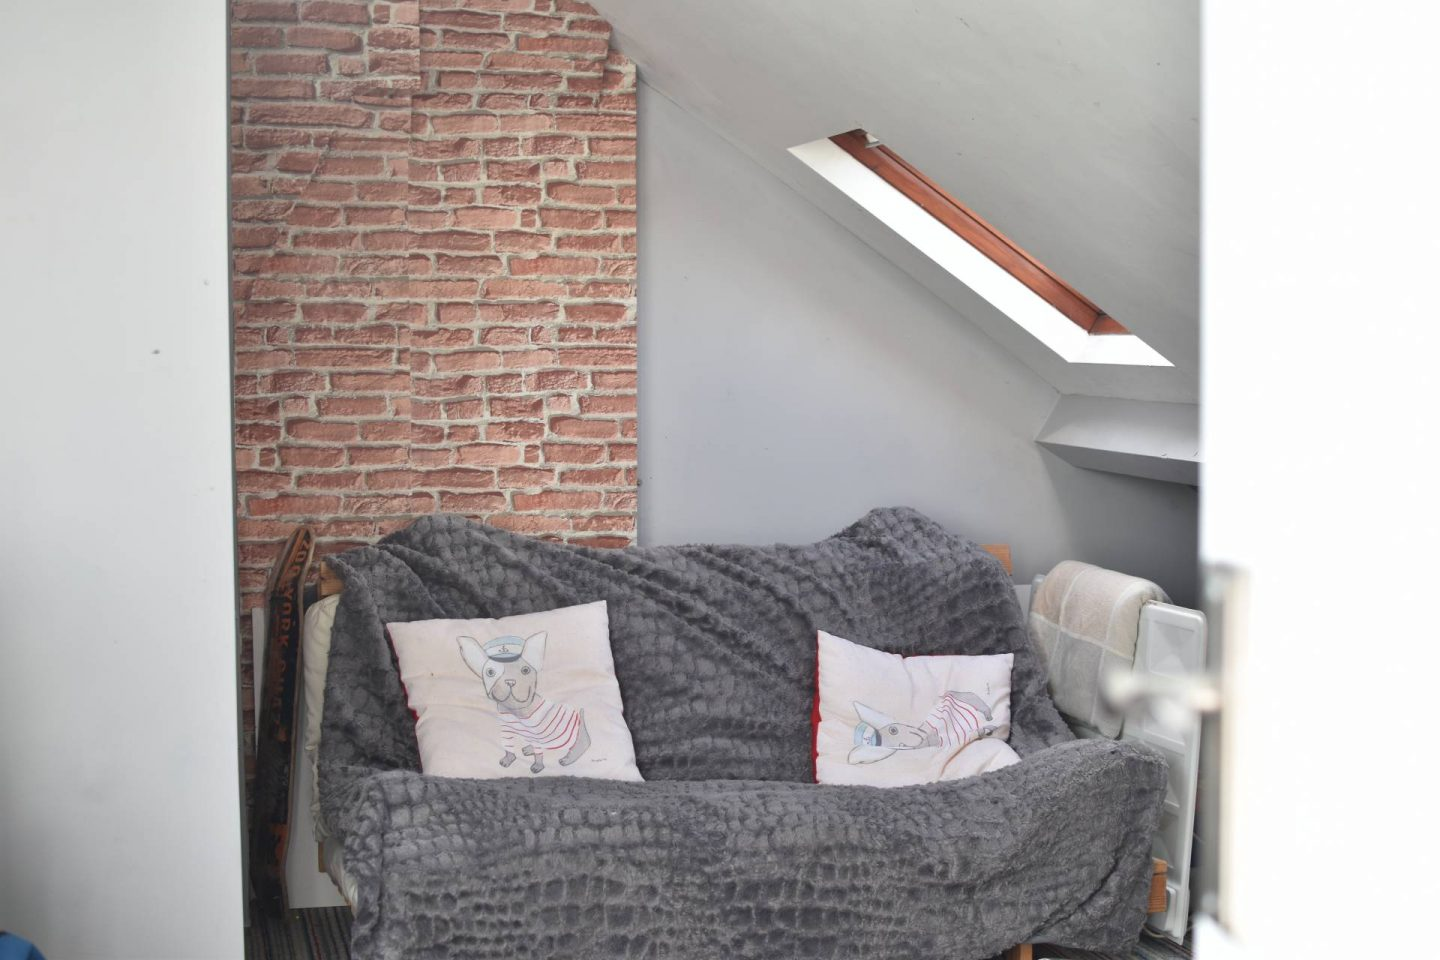 Considering An Attic Room Conversion?